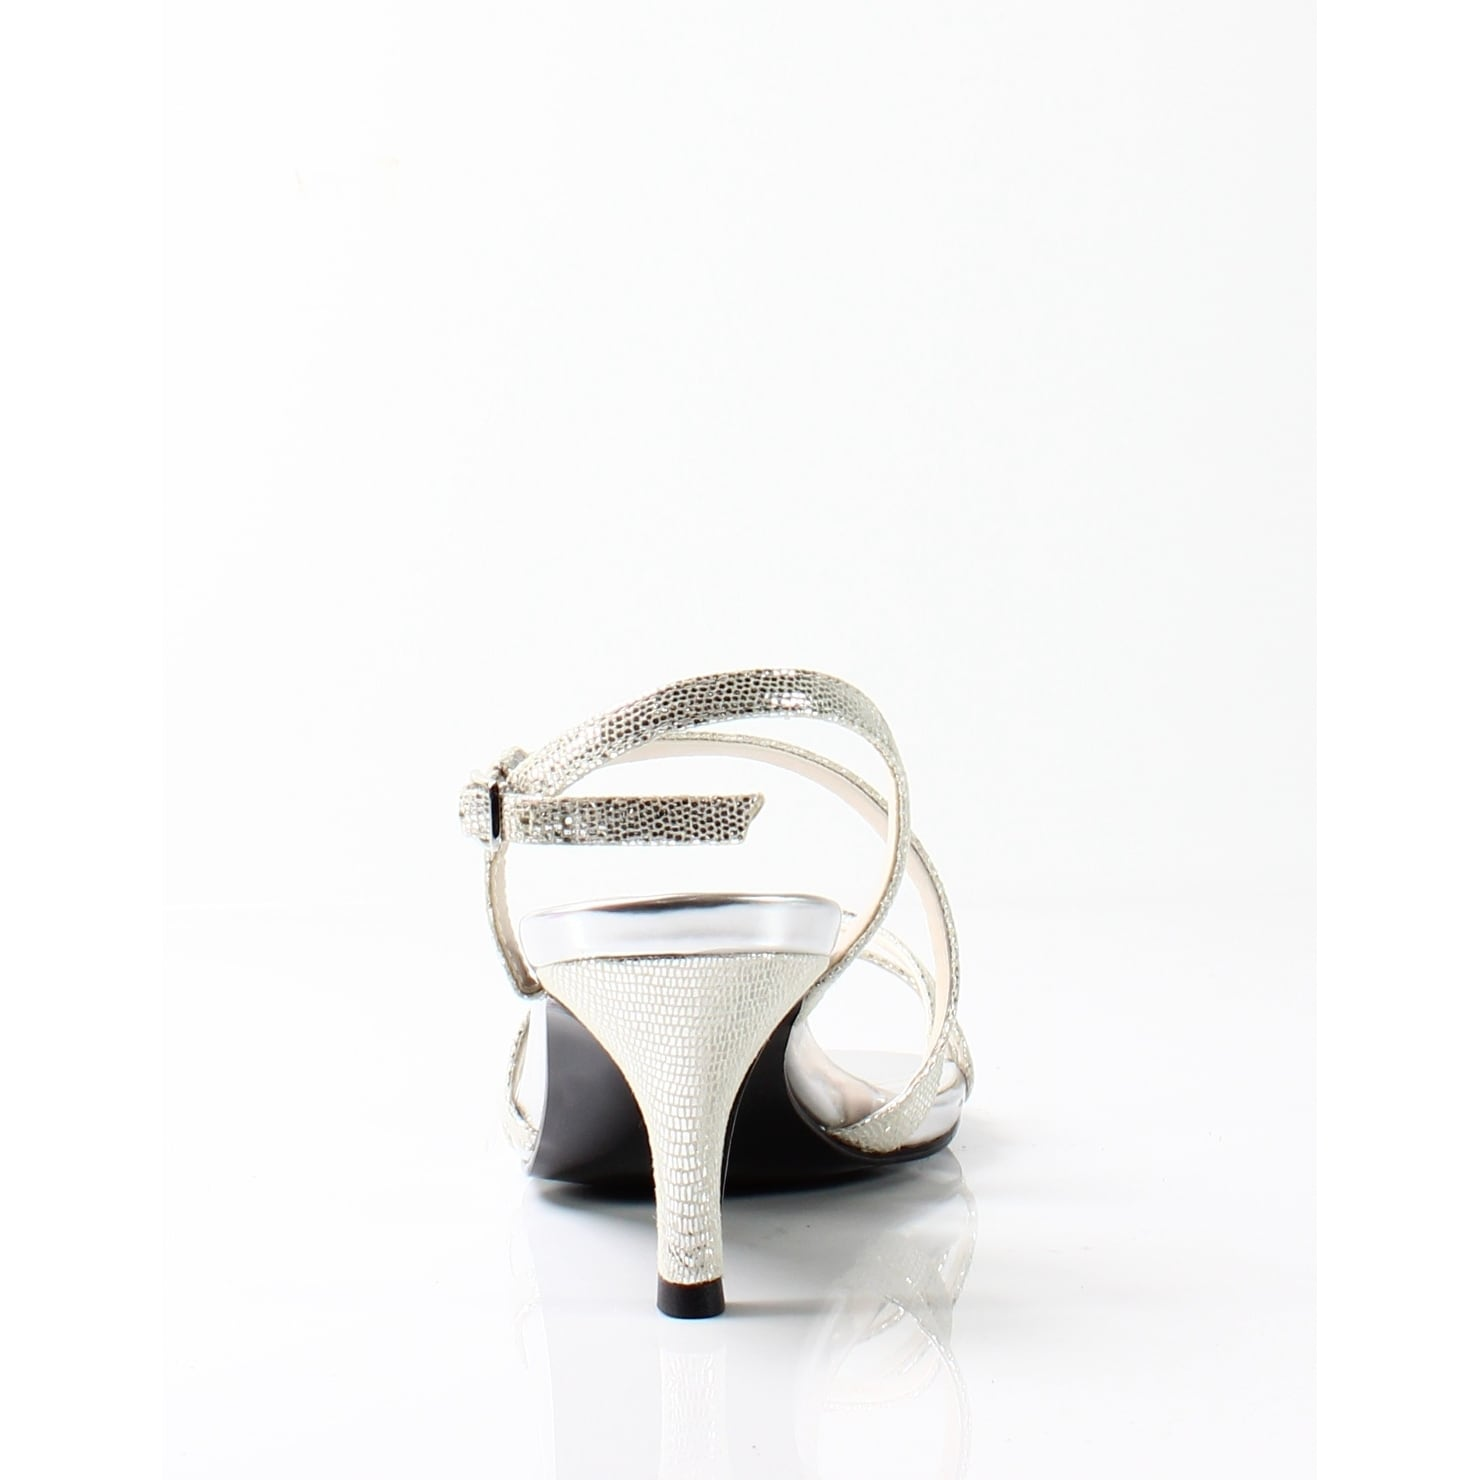 39d828167f9f8 Shop Caparros NEW Silver Women s Shoes Size 7.5M Theresa Strappy Sandal -  Free Shipping On Orders Over  45 - Overstock.com - 19877994